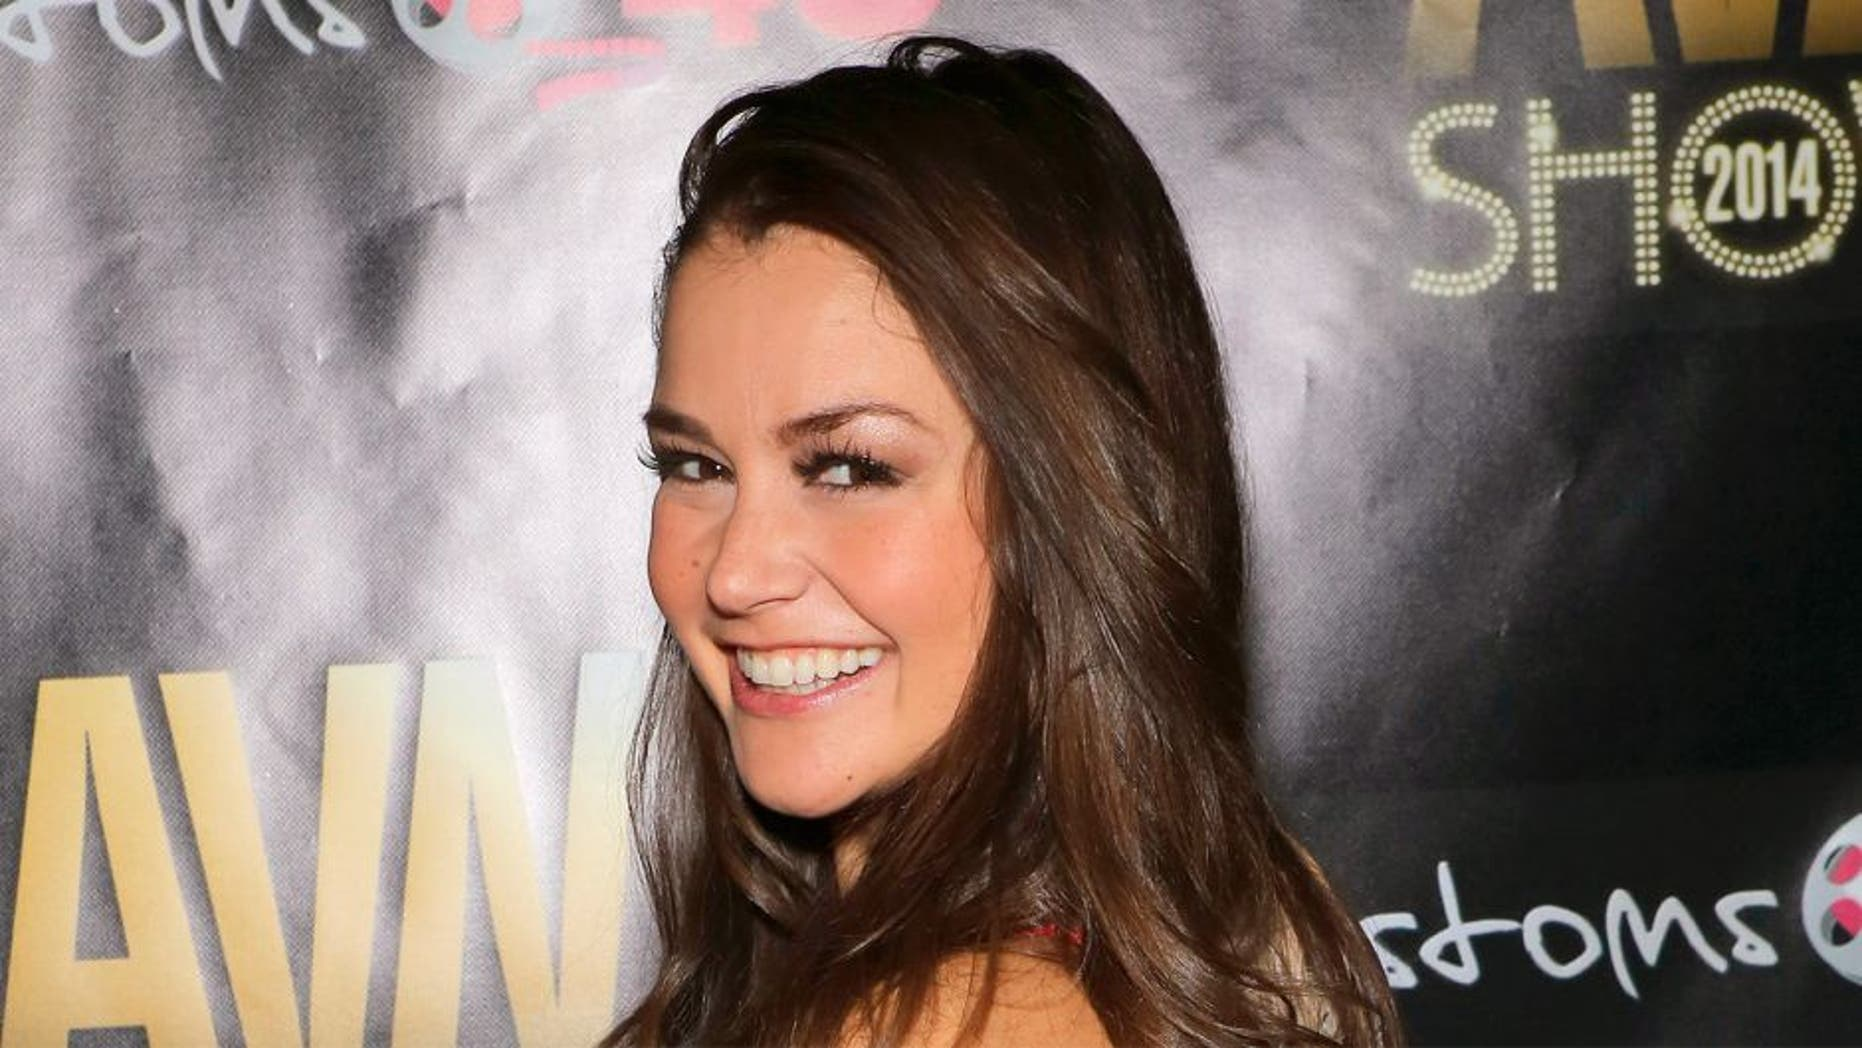 LAS VEGAS, NV - JANUARY 16: Adult film star Allie Haze attends the 2014 AVN Adult Entertainment Expo at the Hard Rock Hotel & Casino on January 16, 2014 in Las Vegas, Nevada. (Photo by Gabe Ginsberg/FilmMagic)